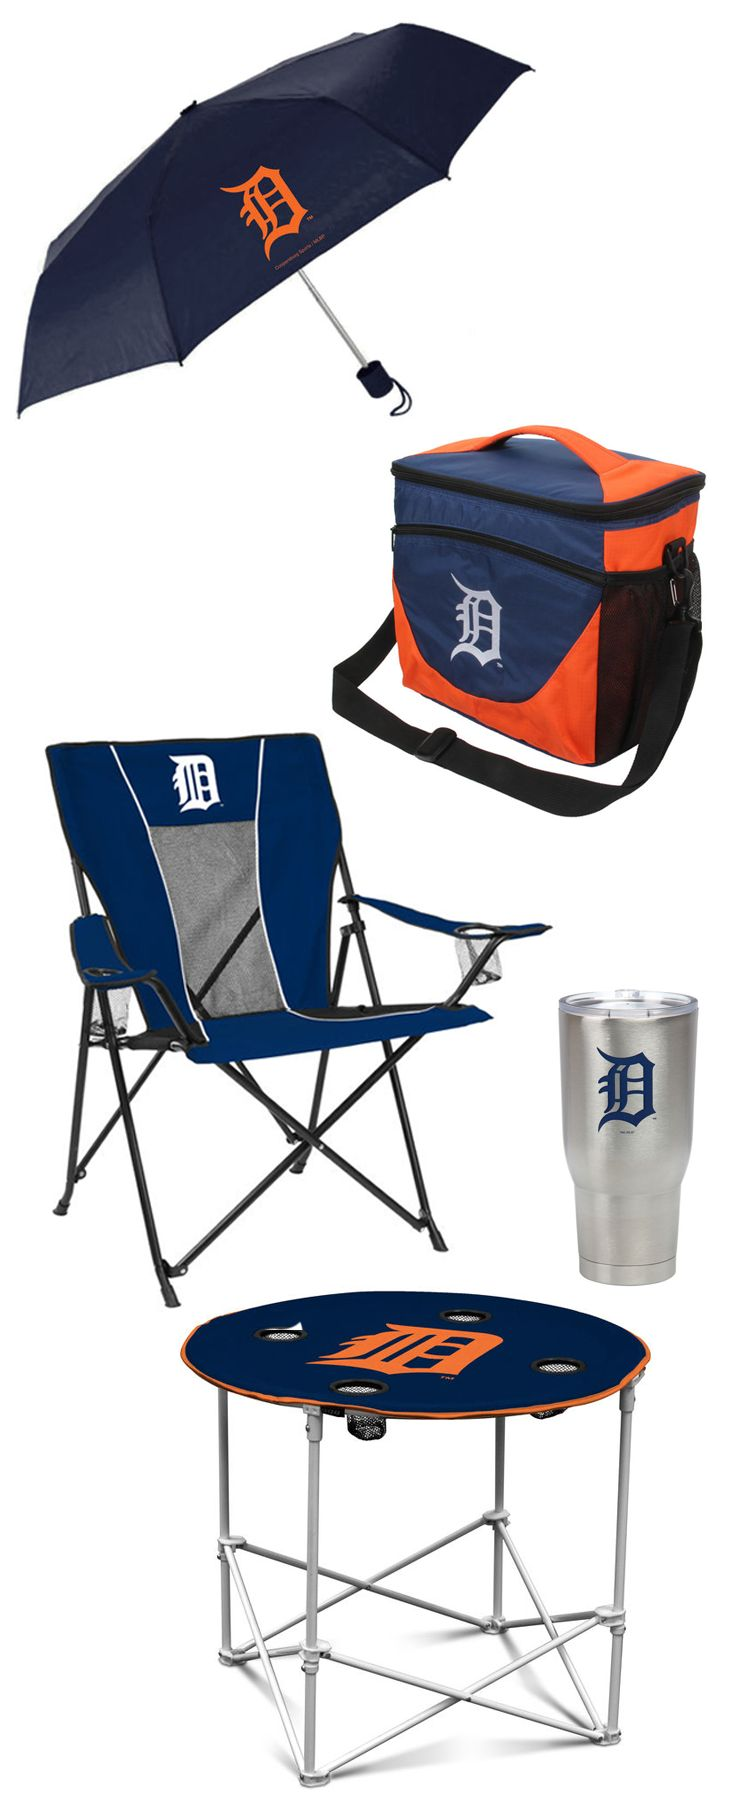 Bring the #Tigers to your tailgate!